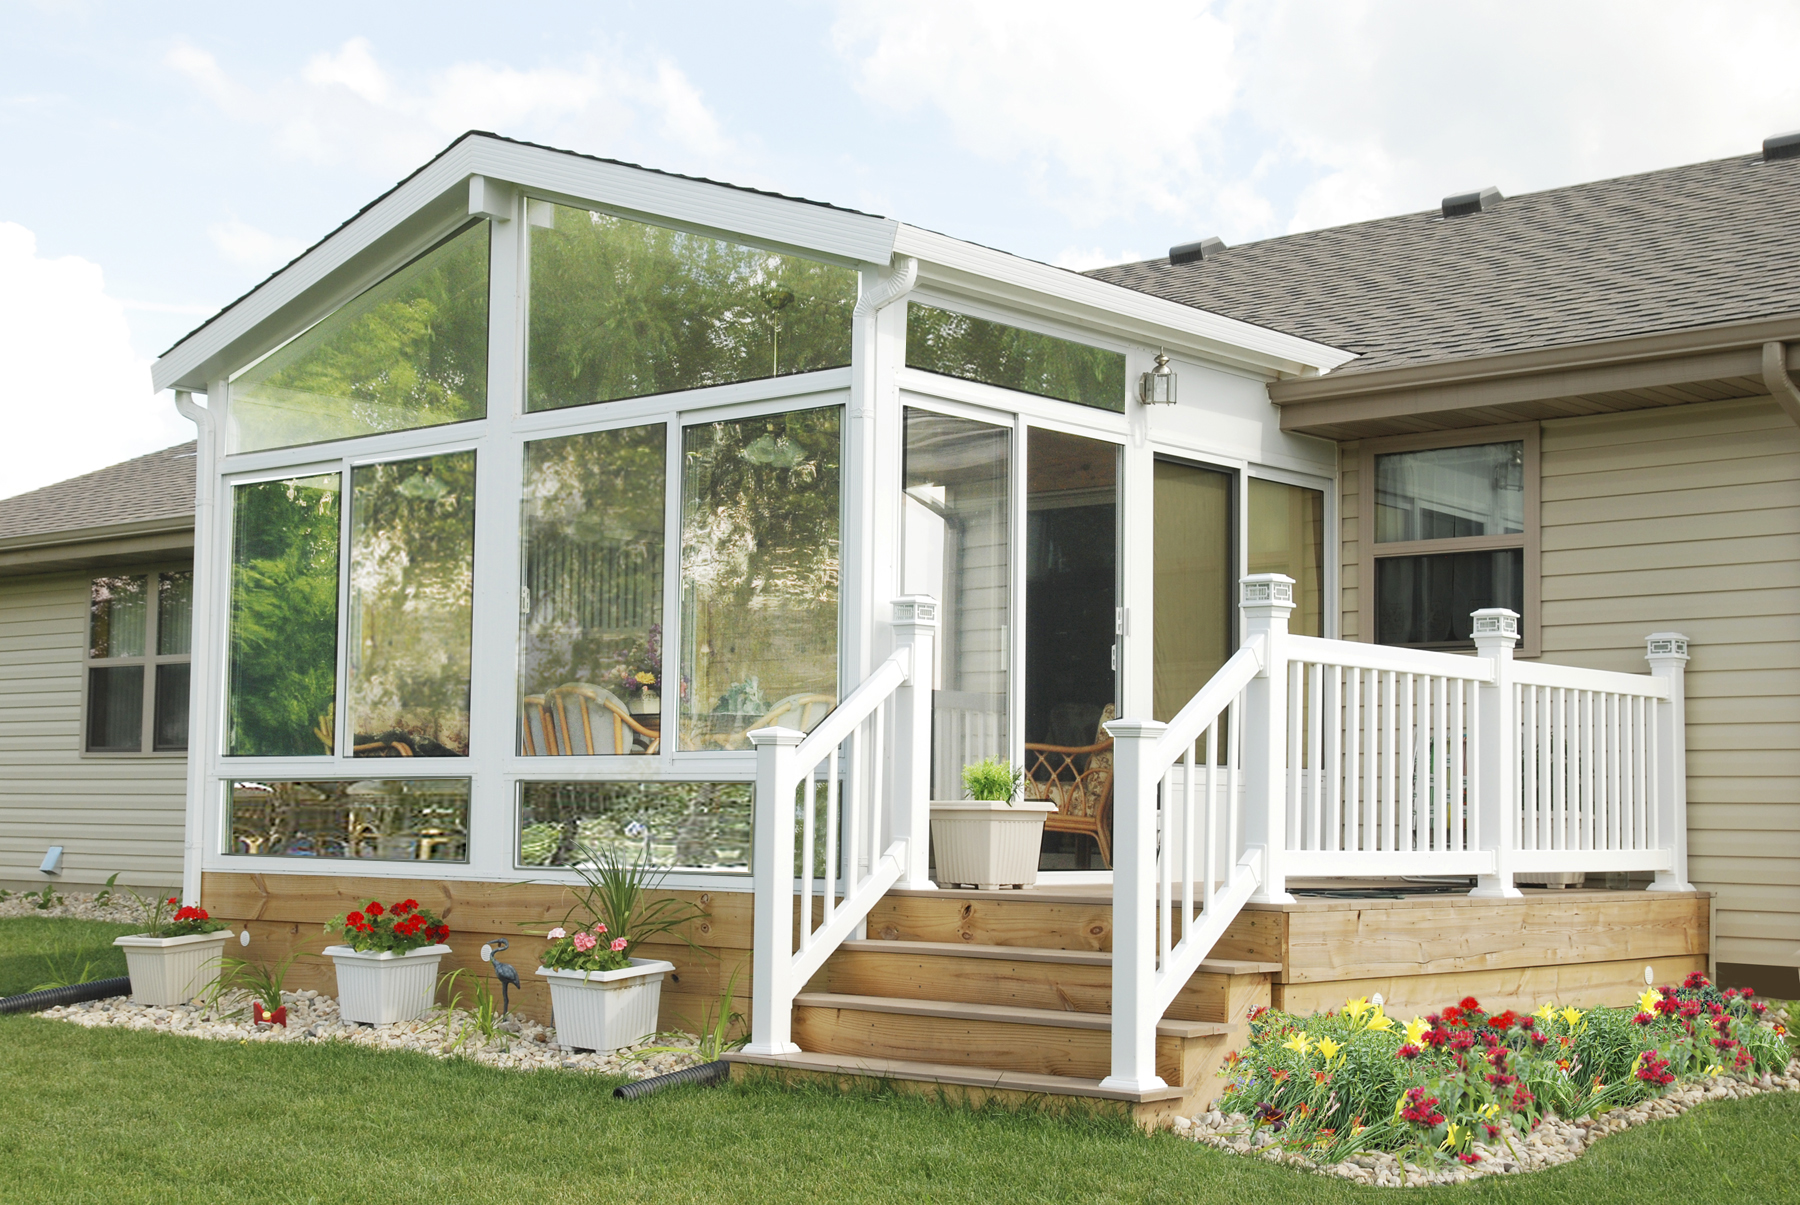 All season sunrooms in pittsburgh pa for 3 season sunroom designs